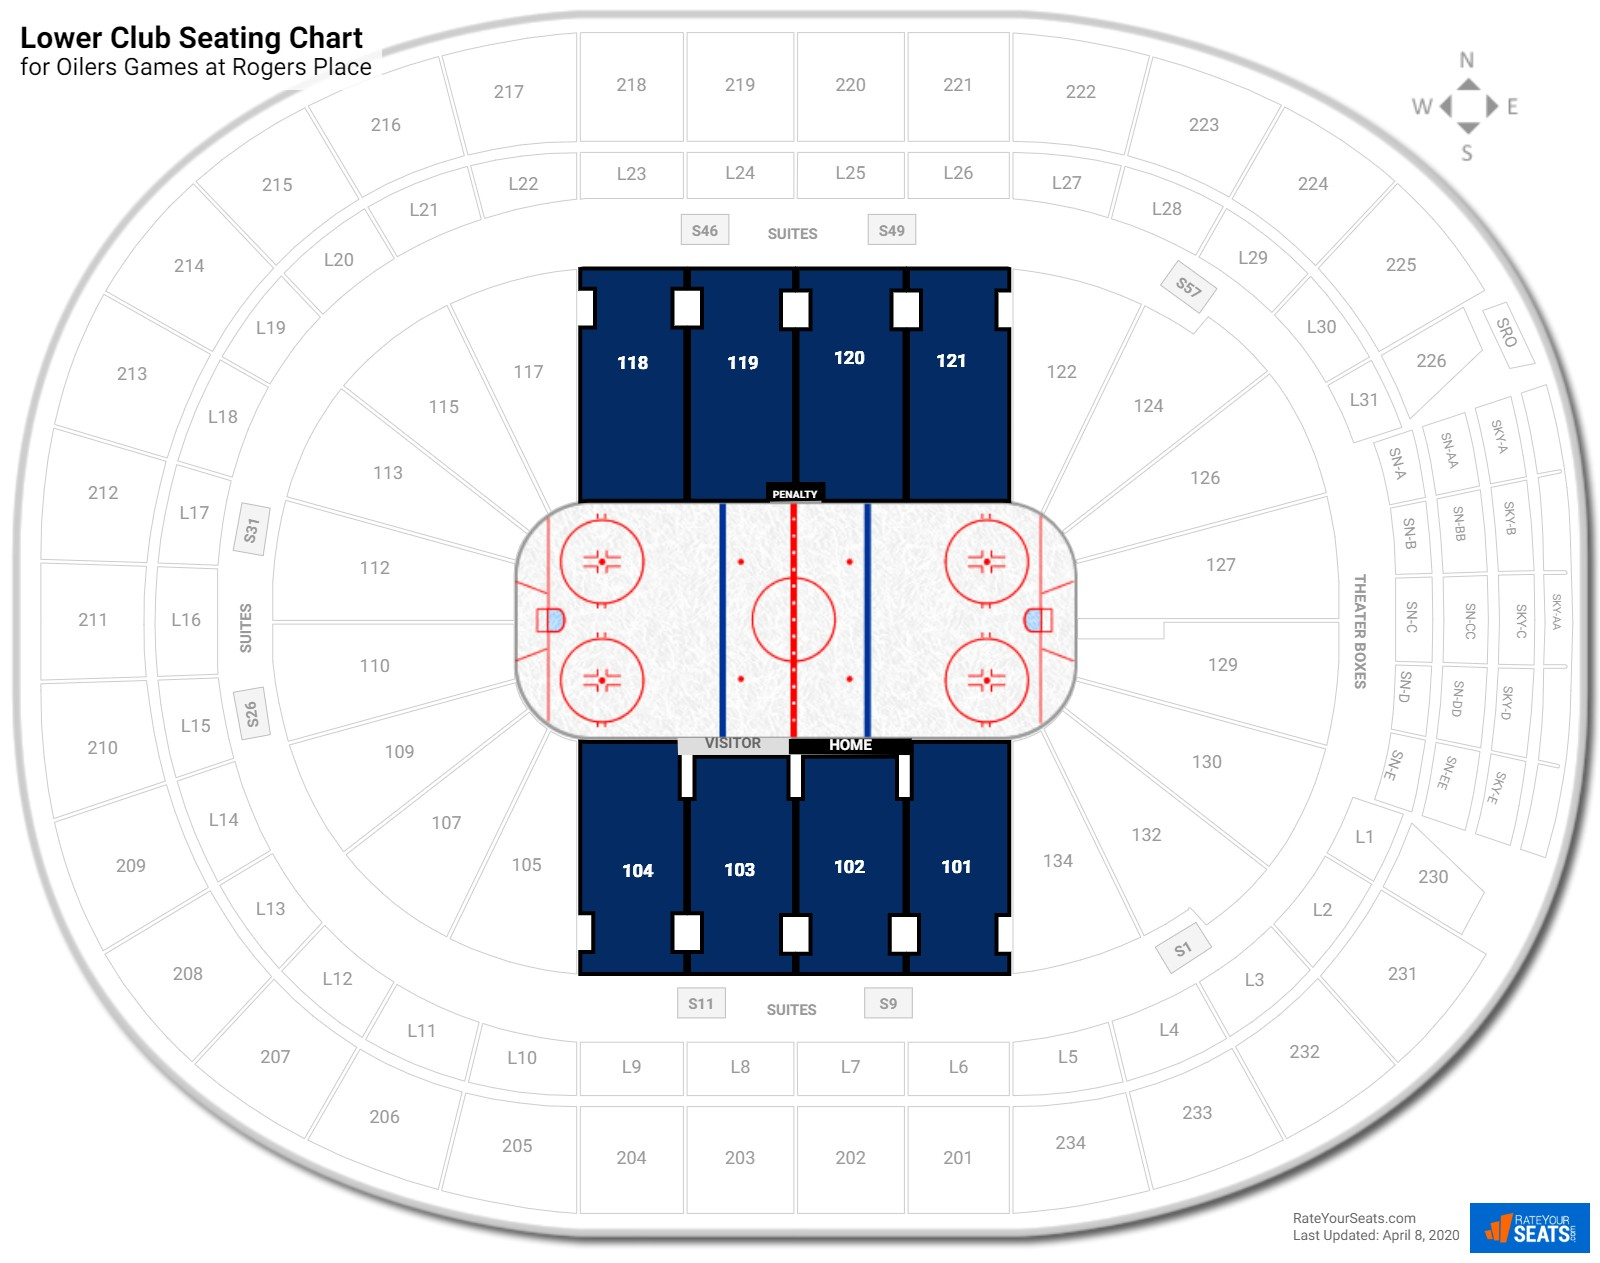 Rogers Place Lower Club seating chart